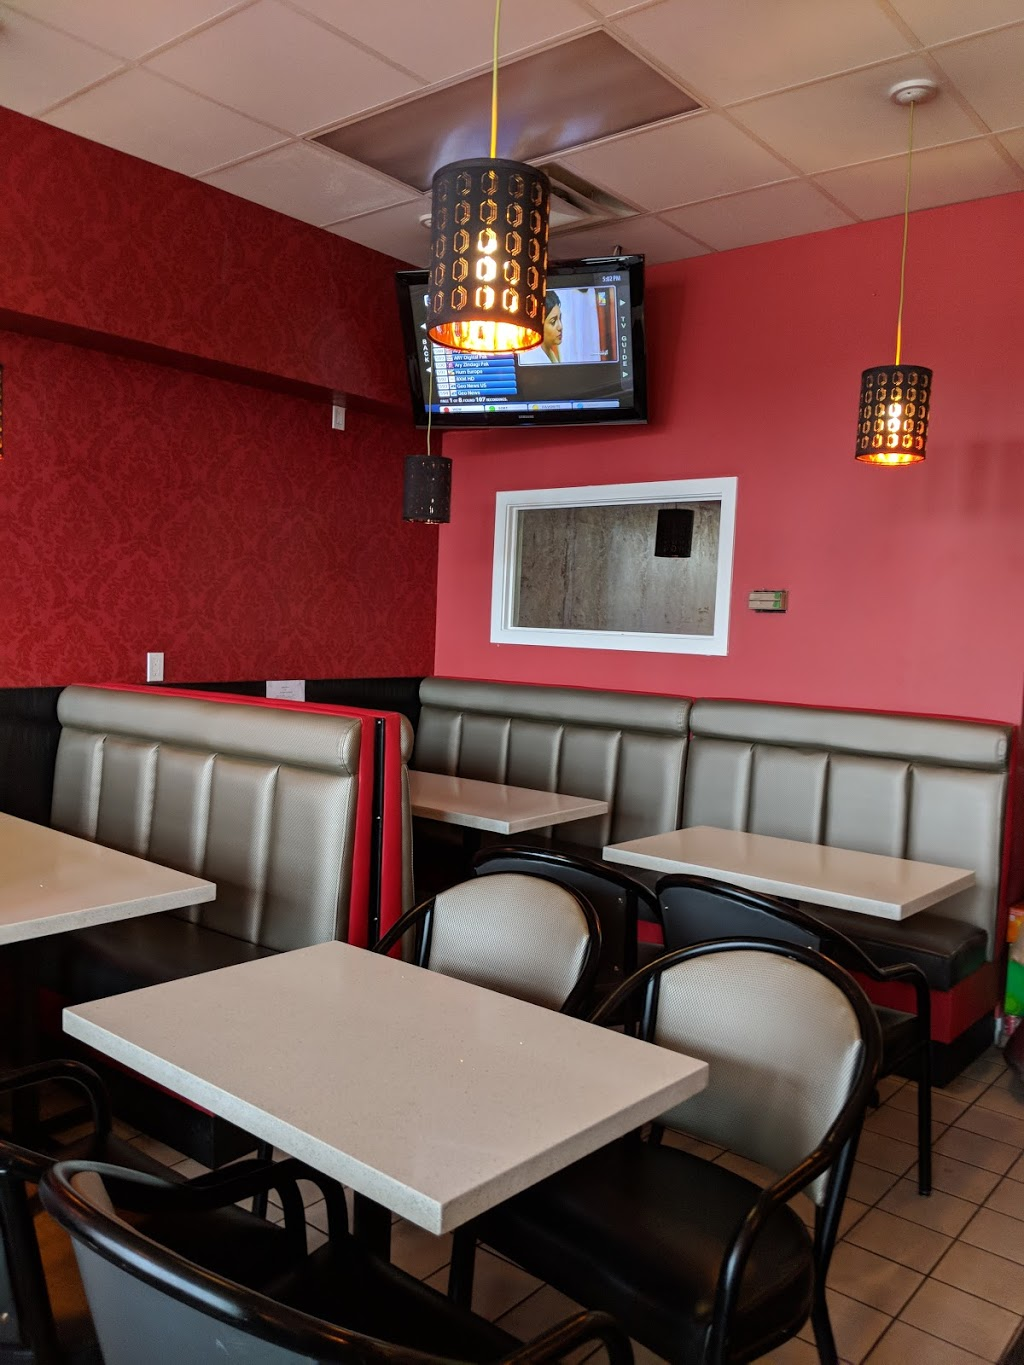 Asian Grill - BBQ & Chinese Halal | restaurant | 540, 1440 52 St NE, Calgary, AB T2A 4T8, Canada | 4032048383 OR +1 403-204-8383